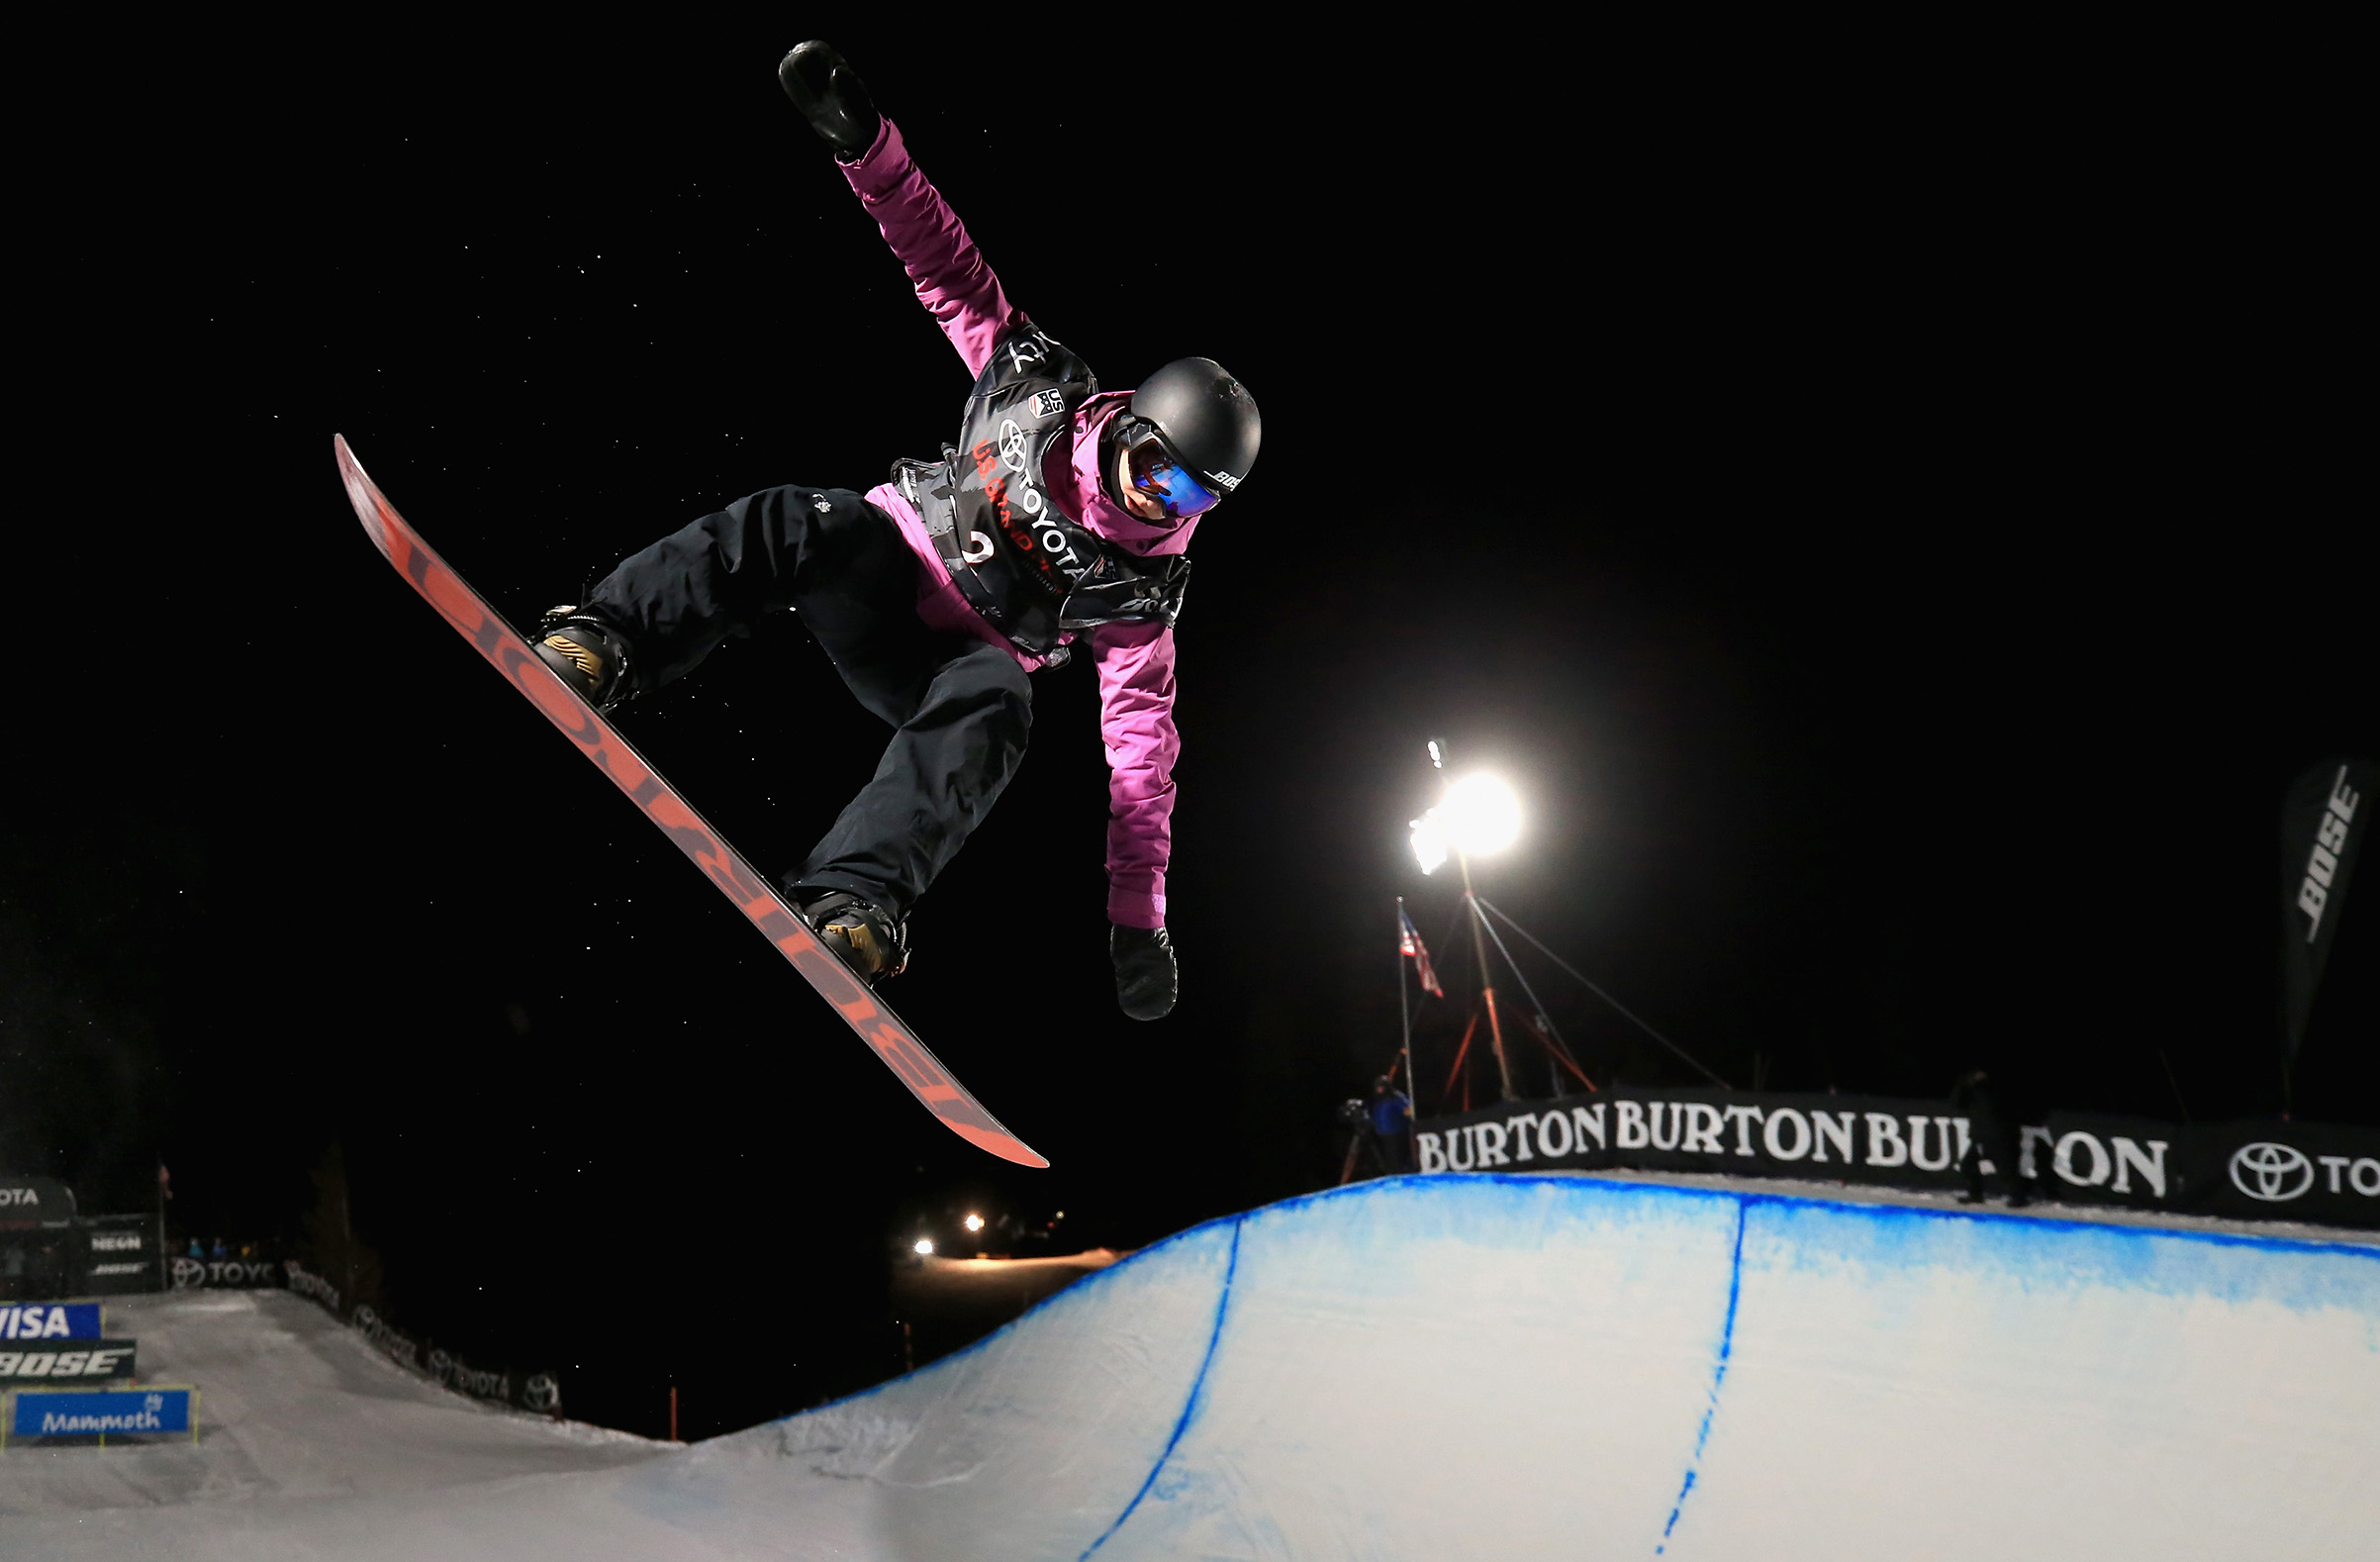 Kelly Clark competes in the final round of the Ladies' Snowboard Halfpipe during the Toyota U.S. Grand Prix in Mammoth, Calif., on Jan. 20, 2018.